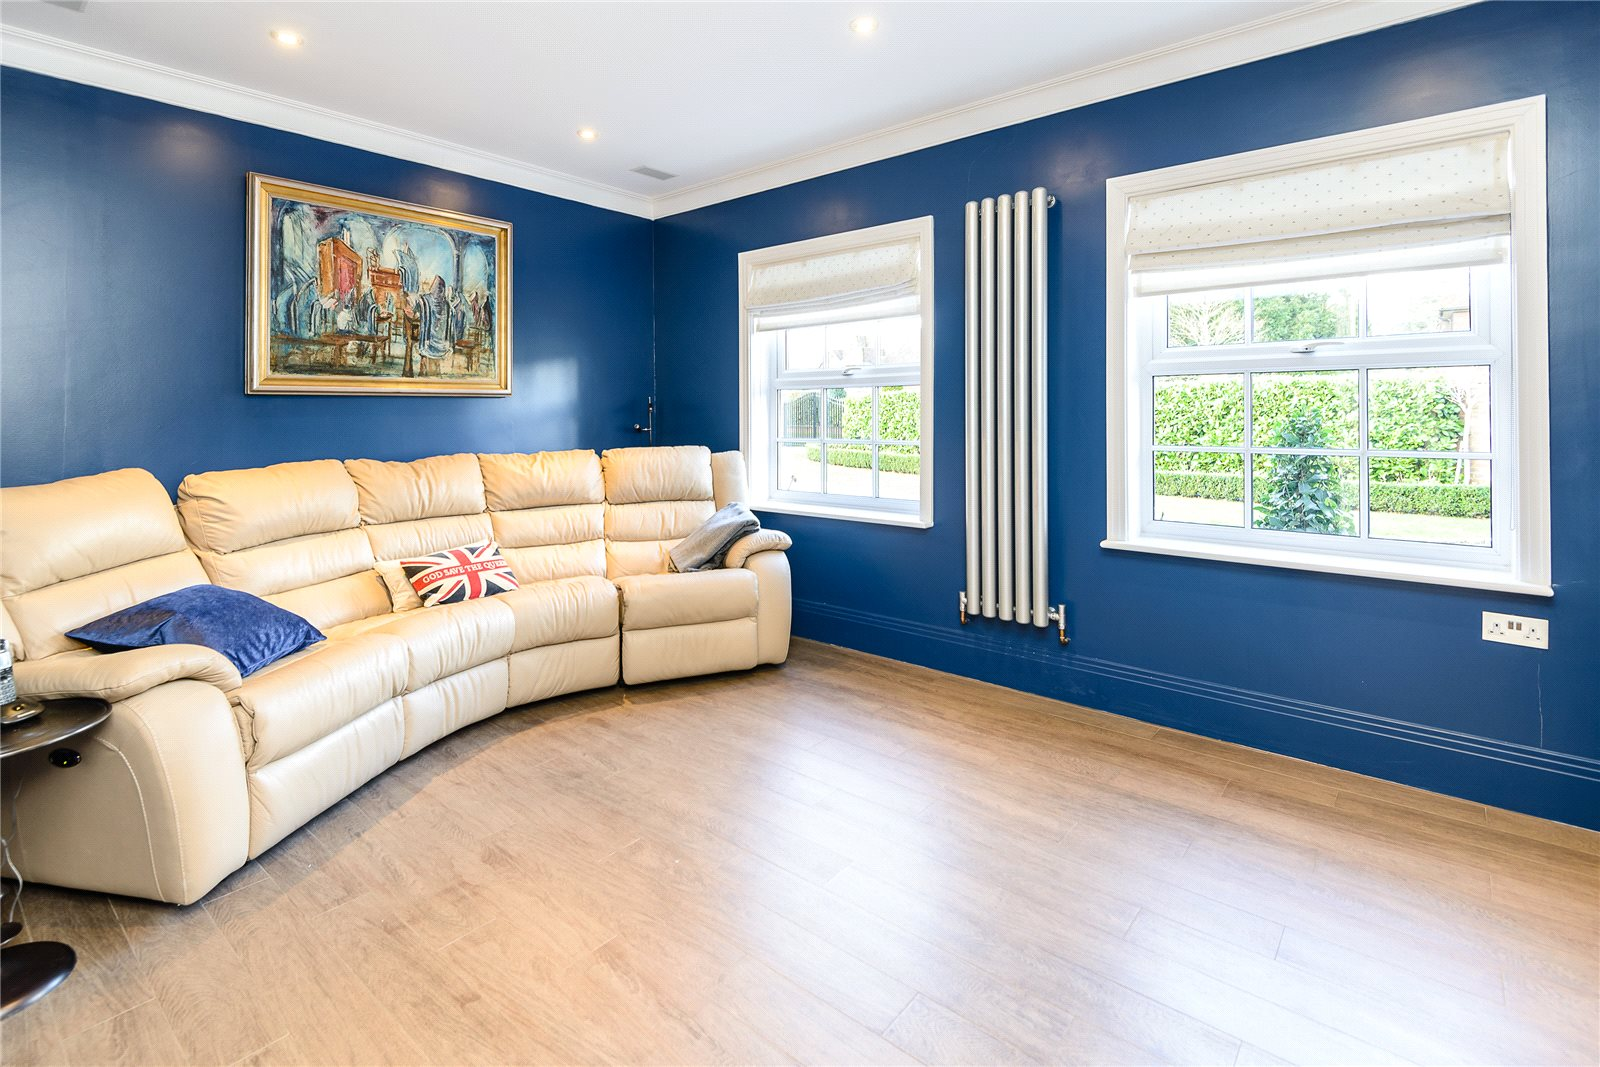 Additional photo for property listing at Camp Road, Gerrards Cross, Bucks, SL9 Angleterre